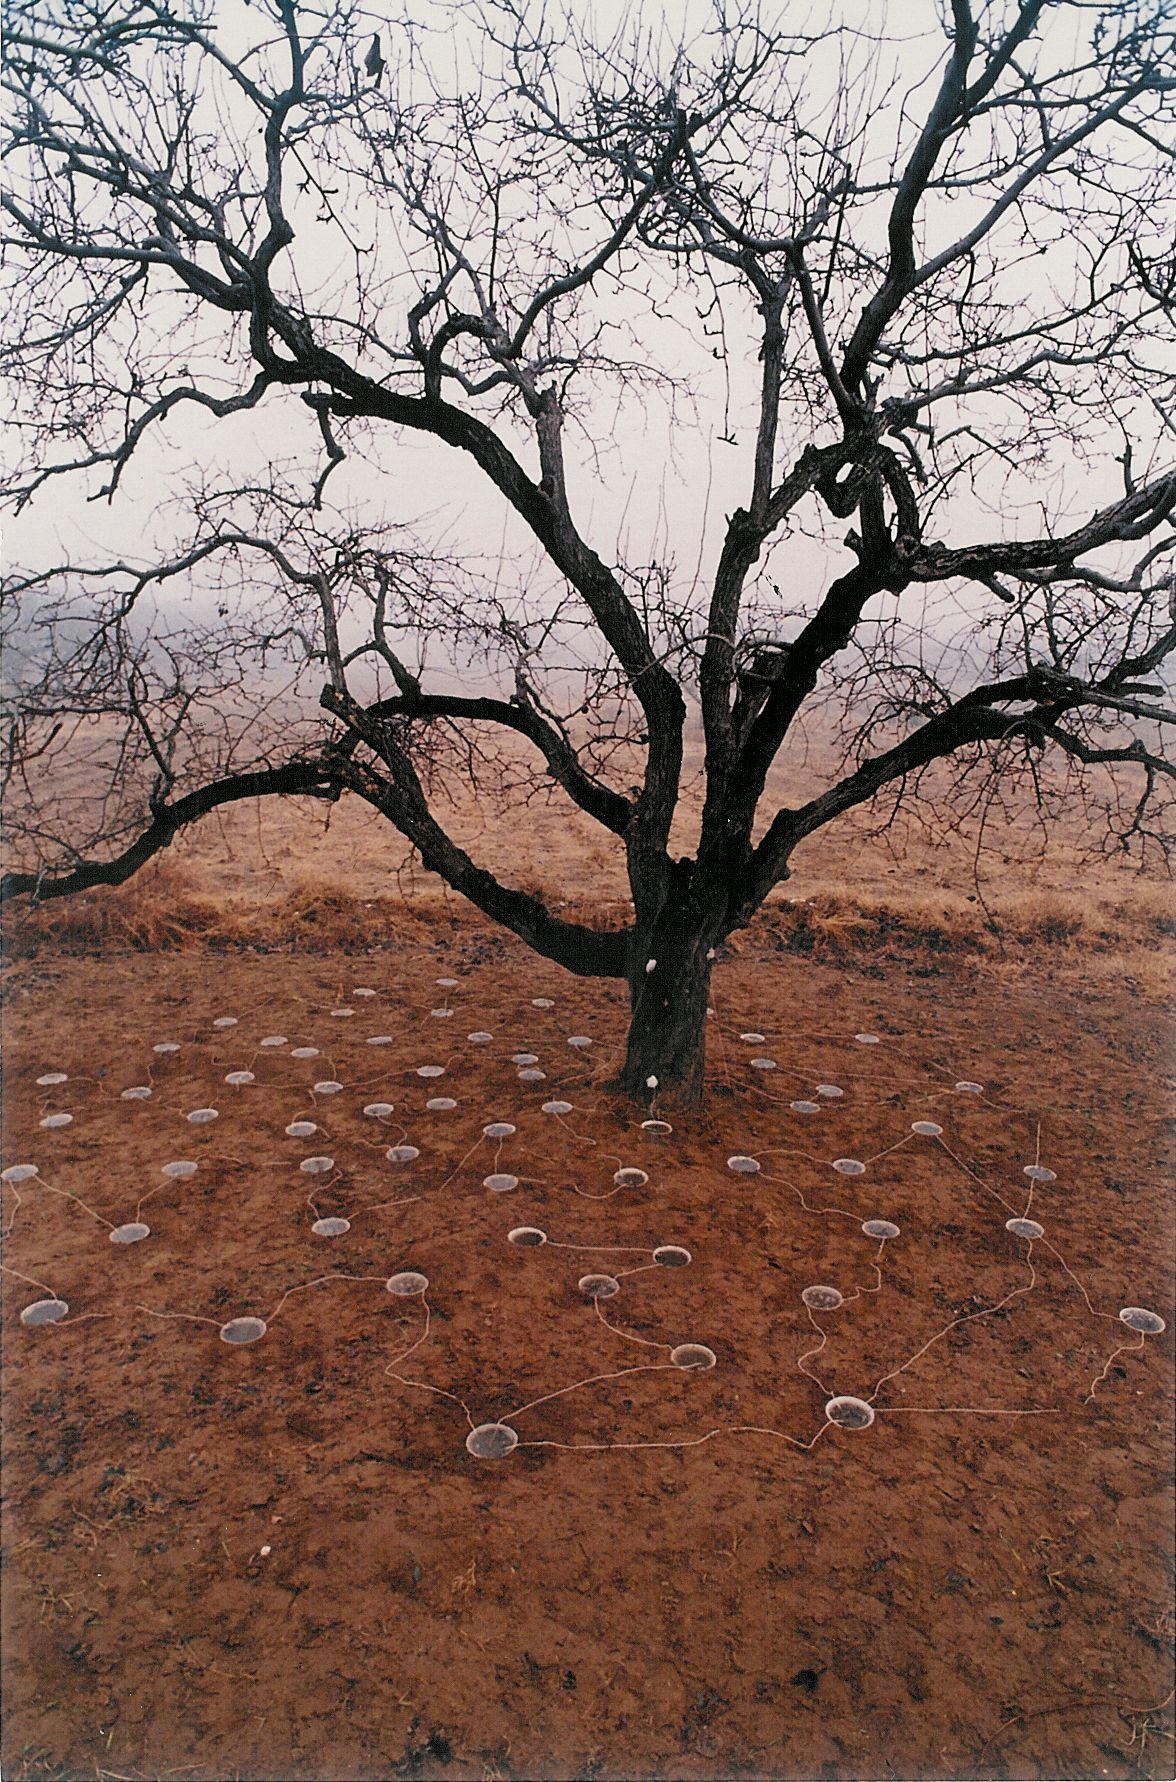 "Pear Tree ç¦»æ '1994Color photograph æ'""å½±47 1/4 x 70 7/8 in (120 x 180 cm)Edition of 12 (12版)"